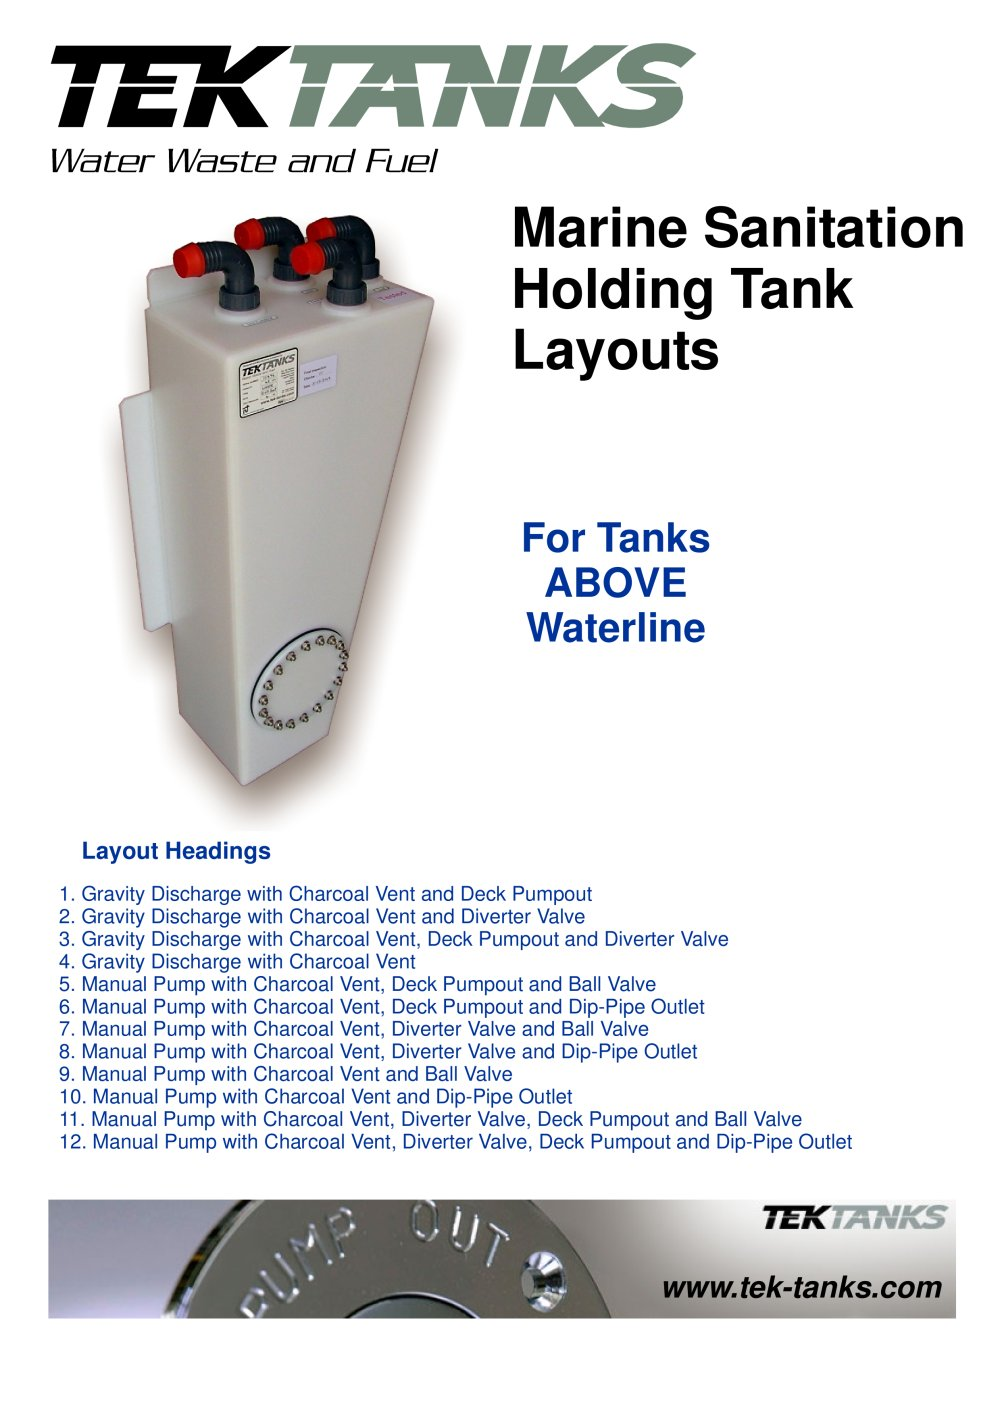 medium resolution of tank above waterline layouts 1 9 pages